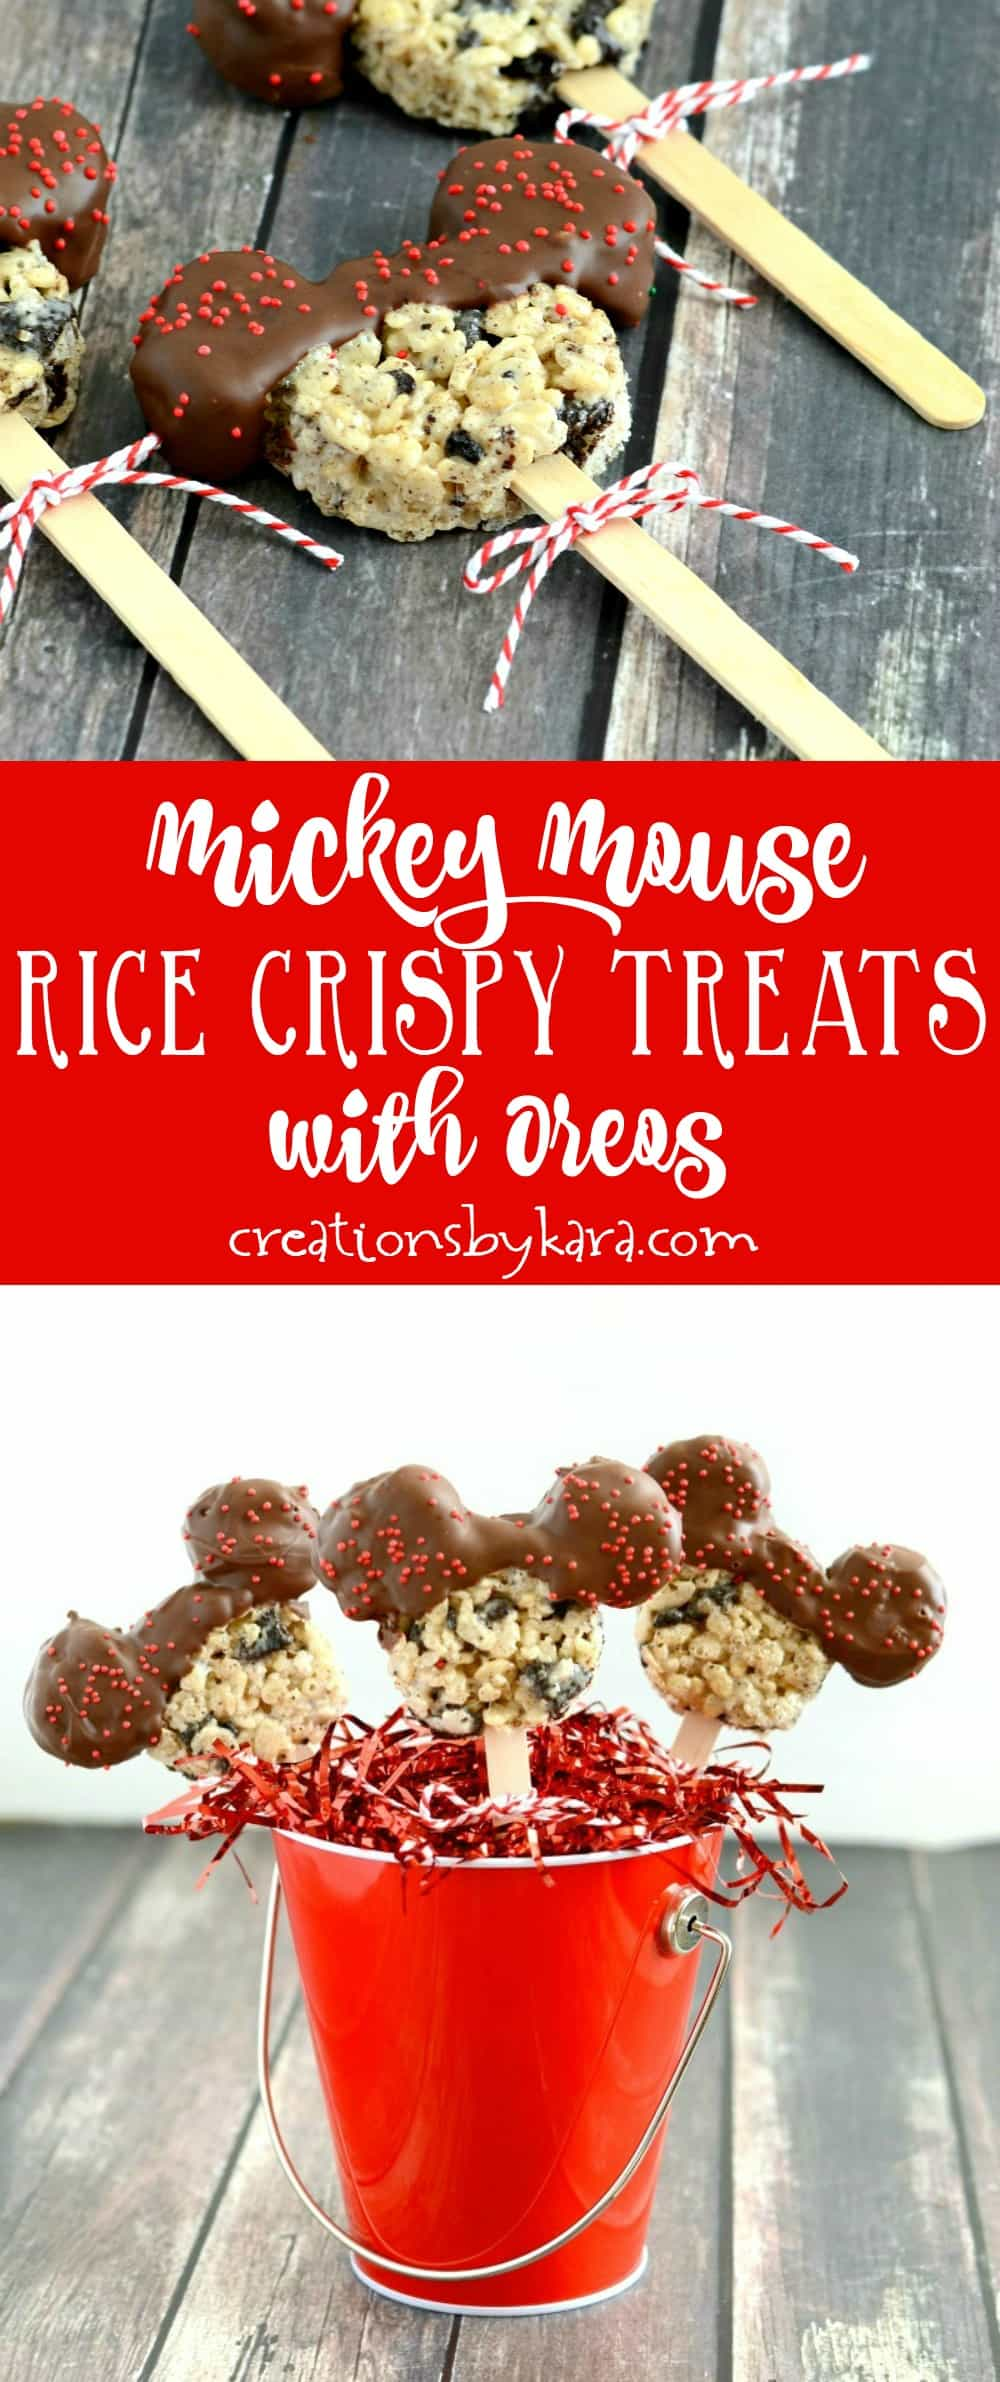 Mickey Mouse Rice Crispy Treats with Oreos - a perfect dessert for Disney fans of all ages. Easy and tasty spin on rice krispy treats!